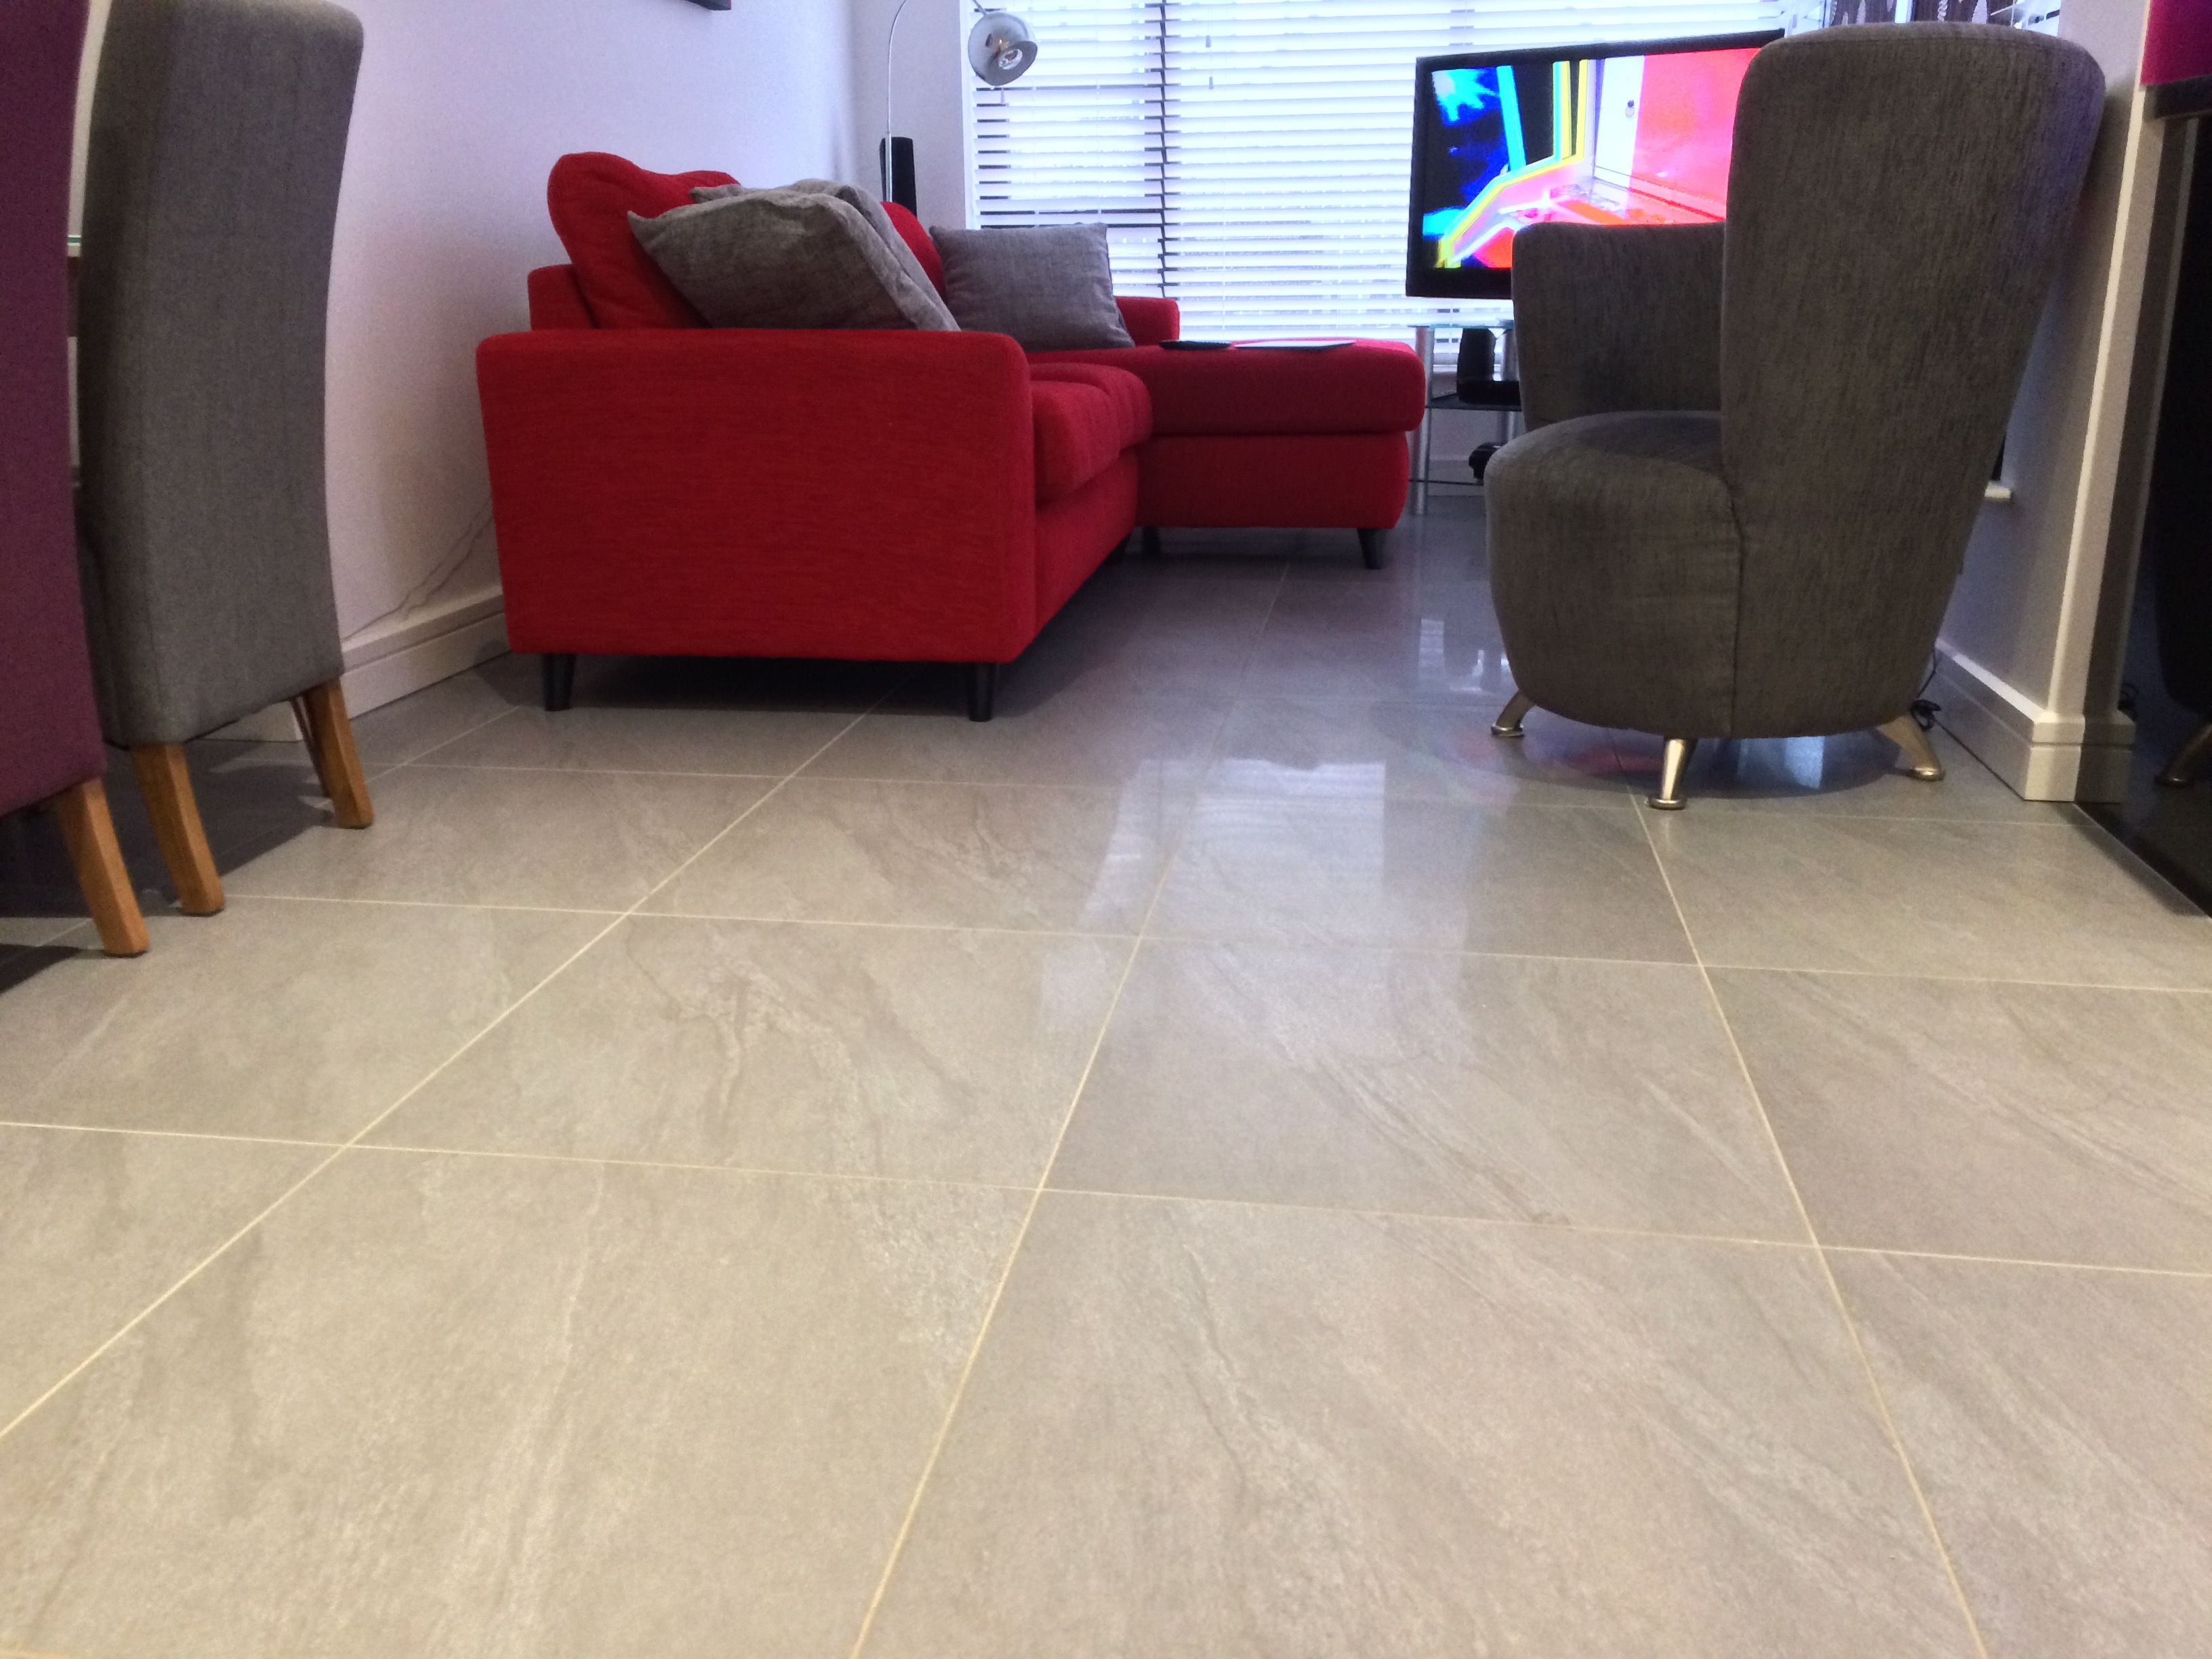 Beau Grey Polished Floor Tiles In Kitchen And Living Area.